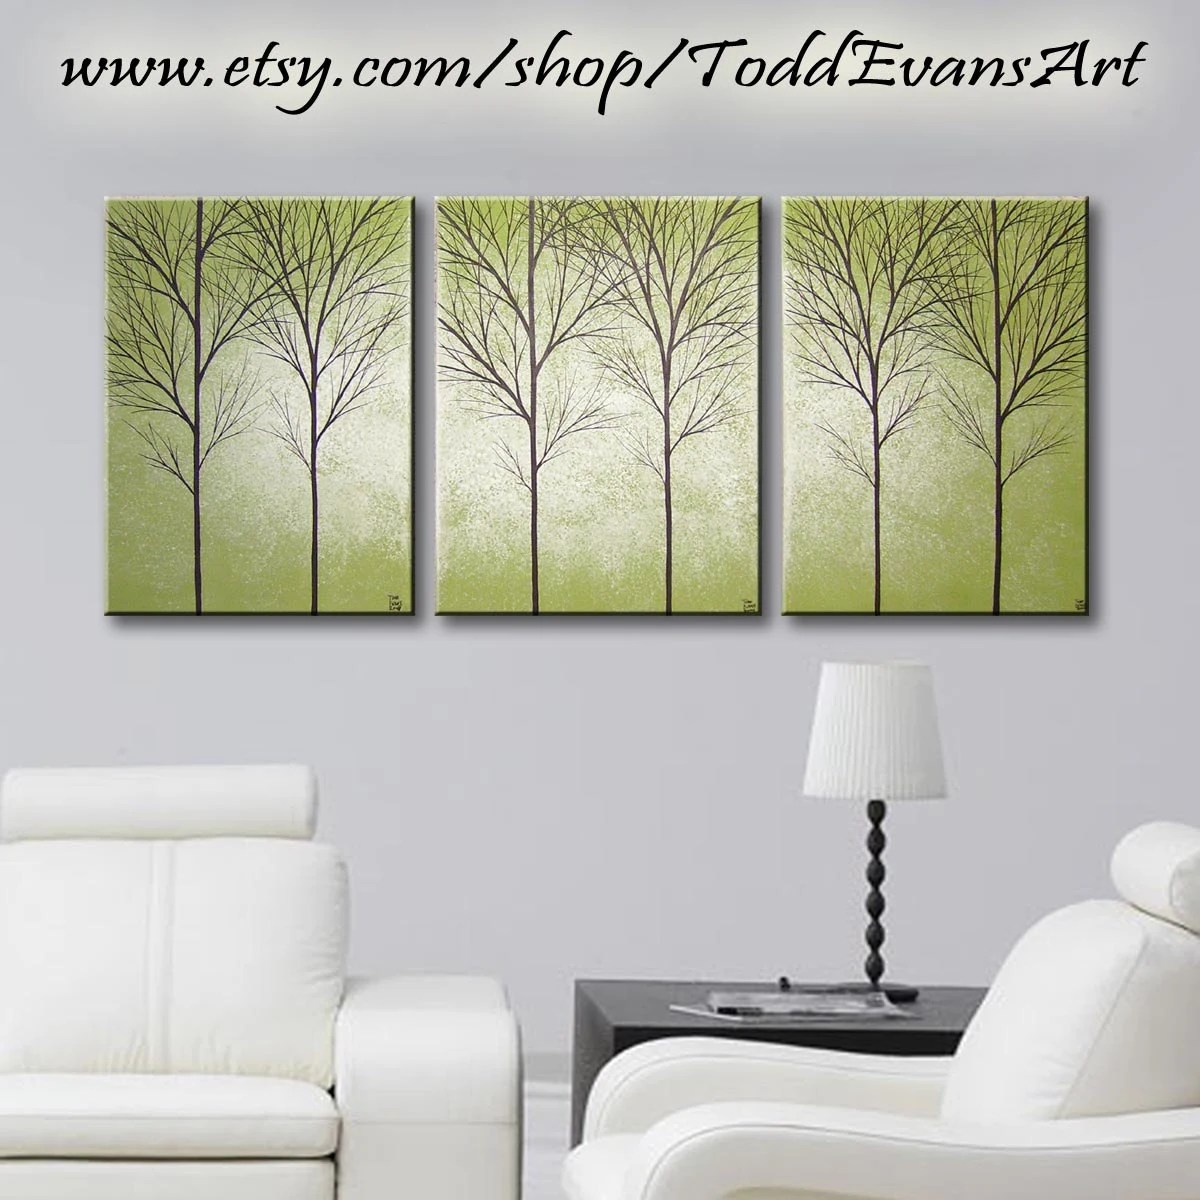 Olive Green Wall Decor Sale Today Olive Green 36 Inches 3 Piece Wall Art Set